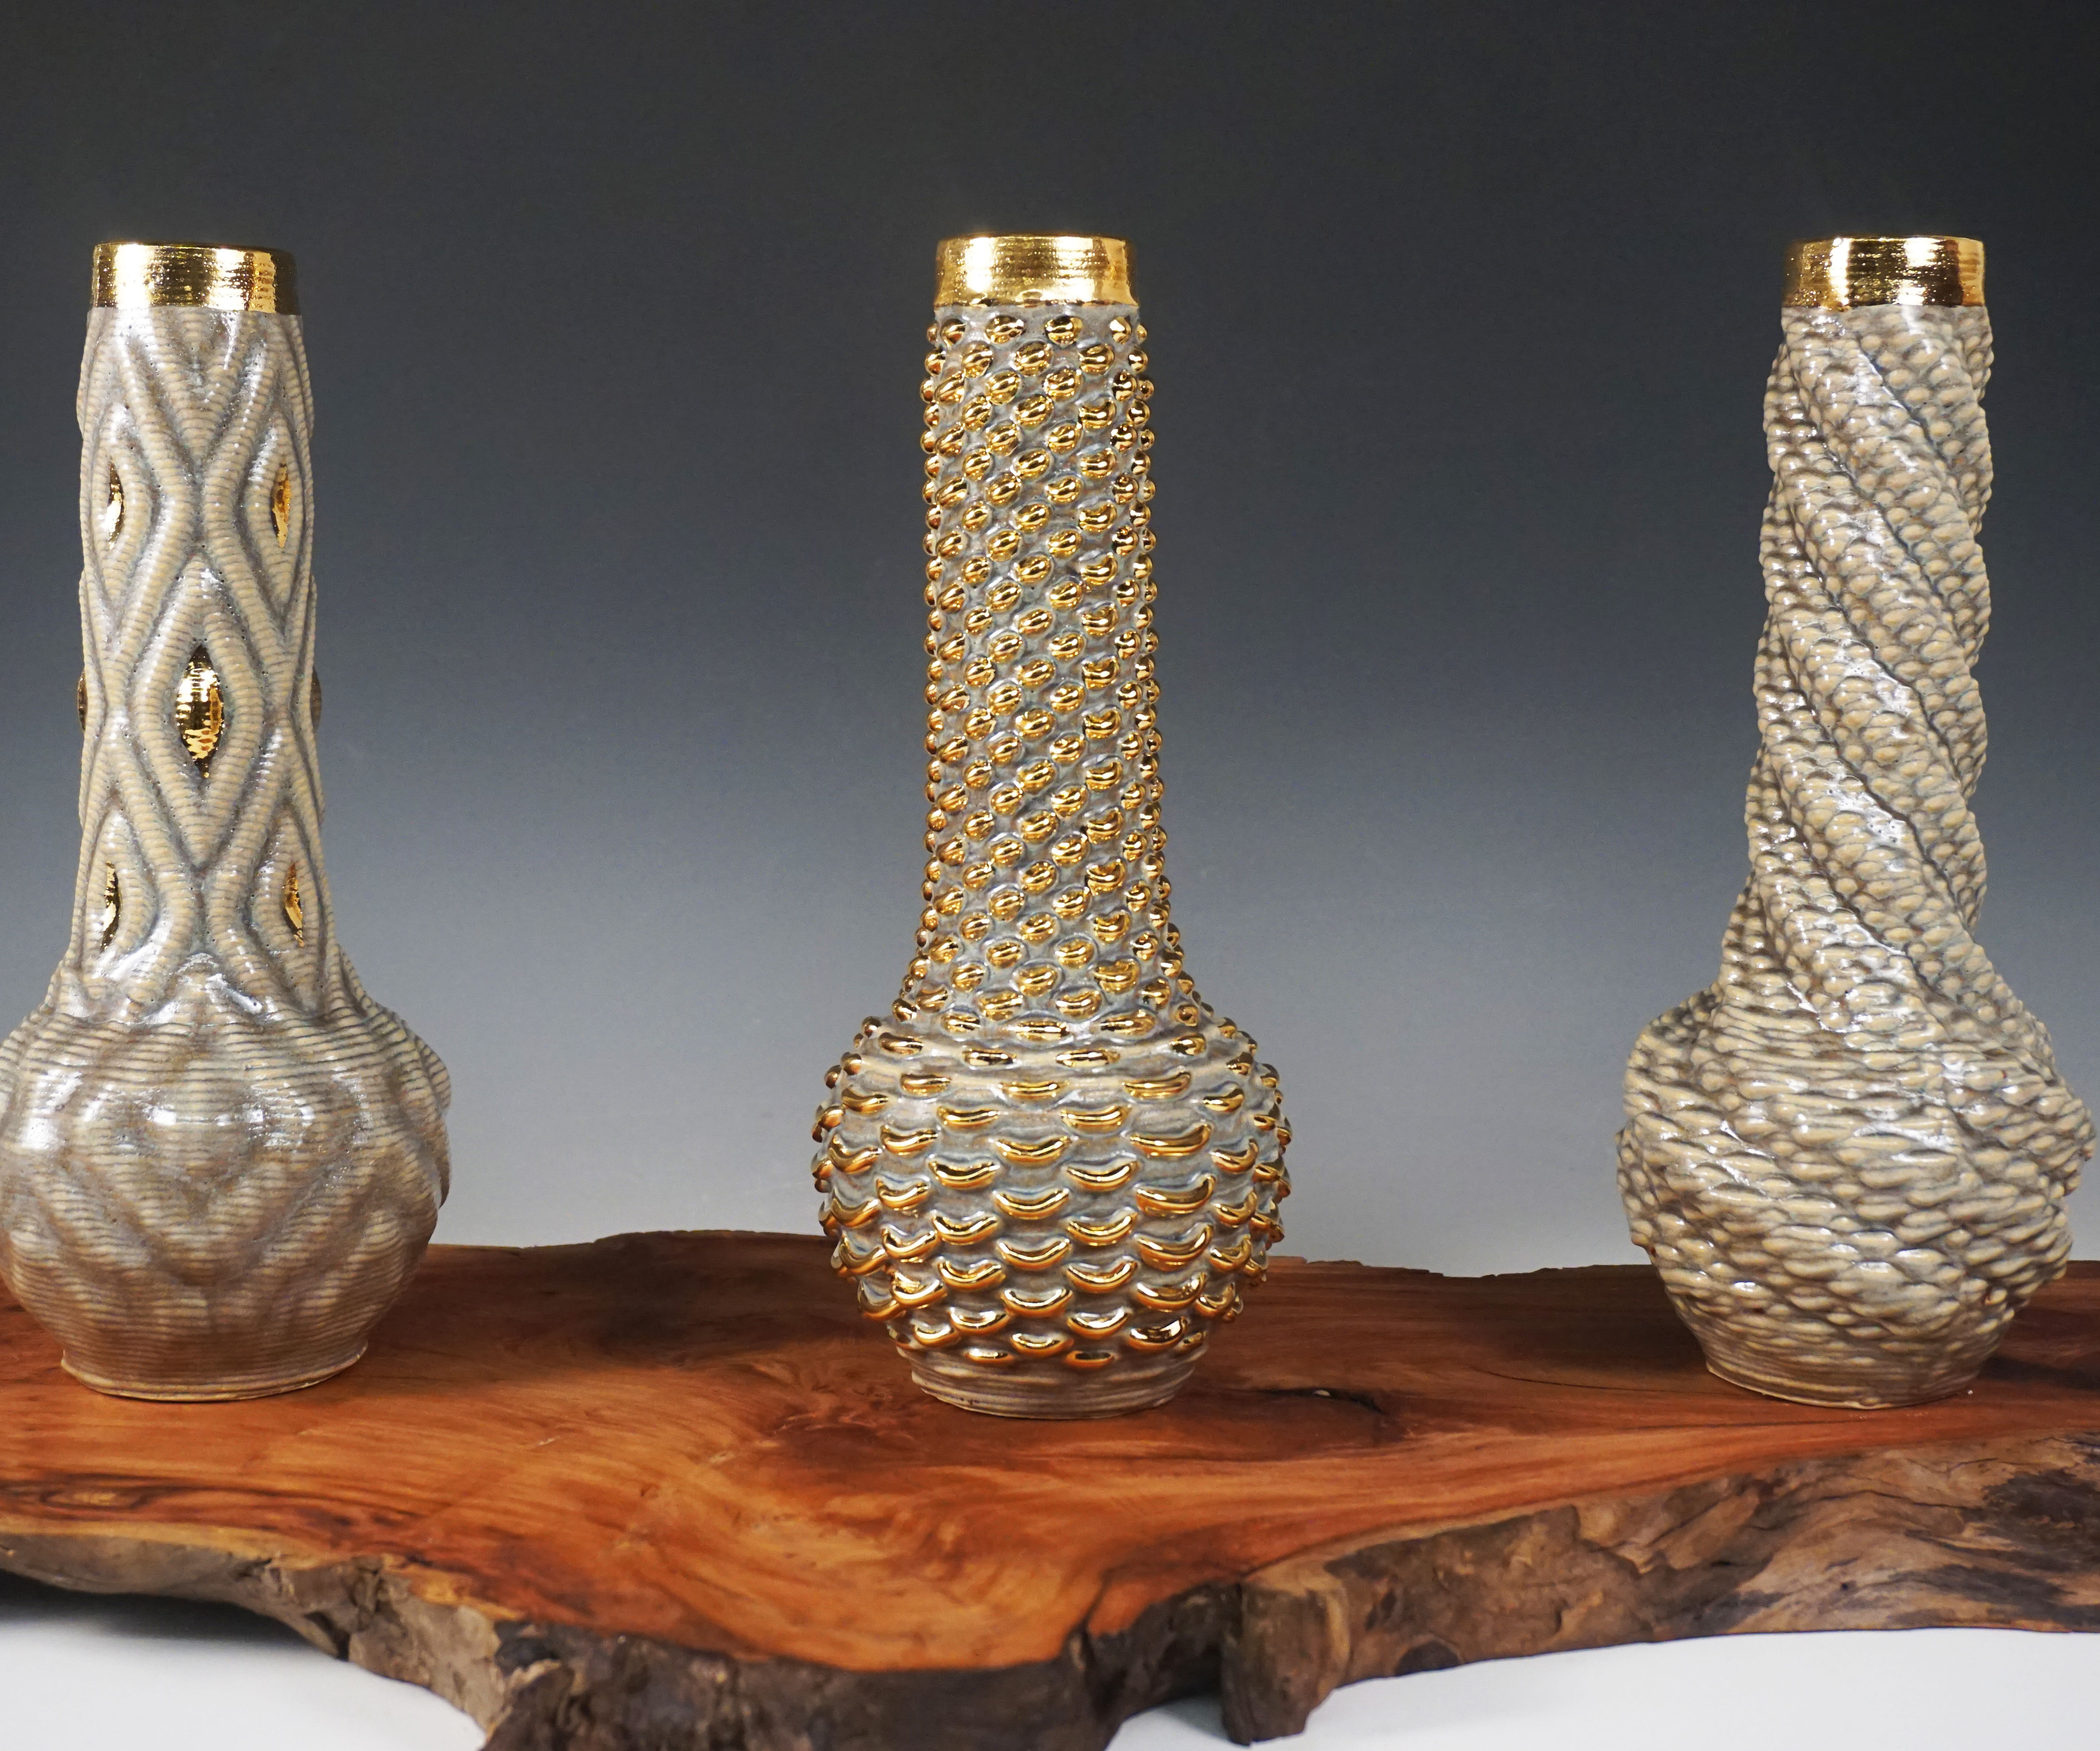 3D printed vessels with glaze and luster